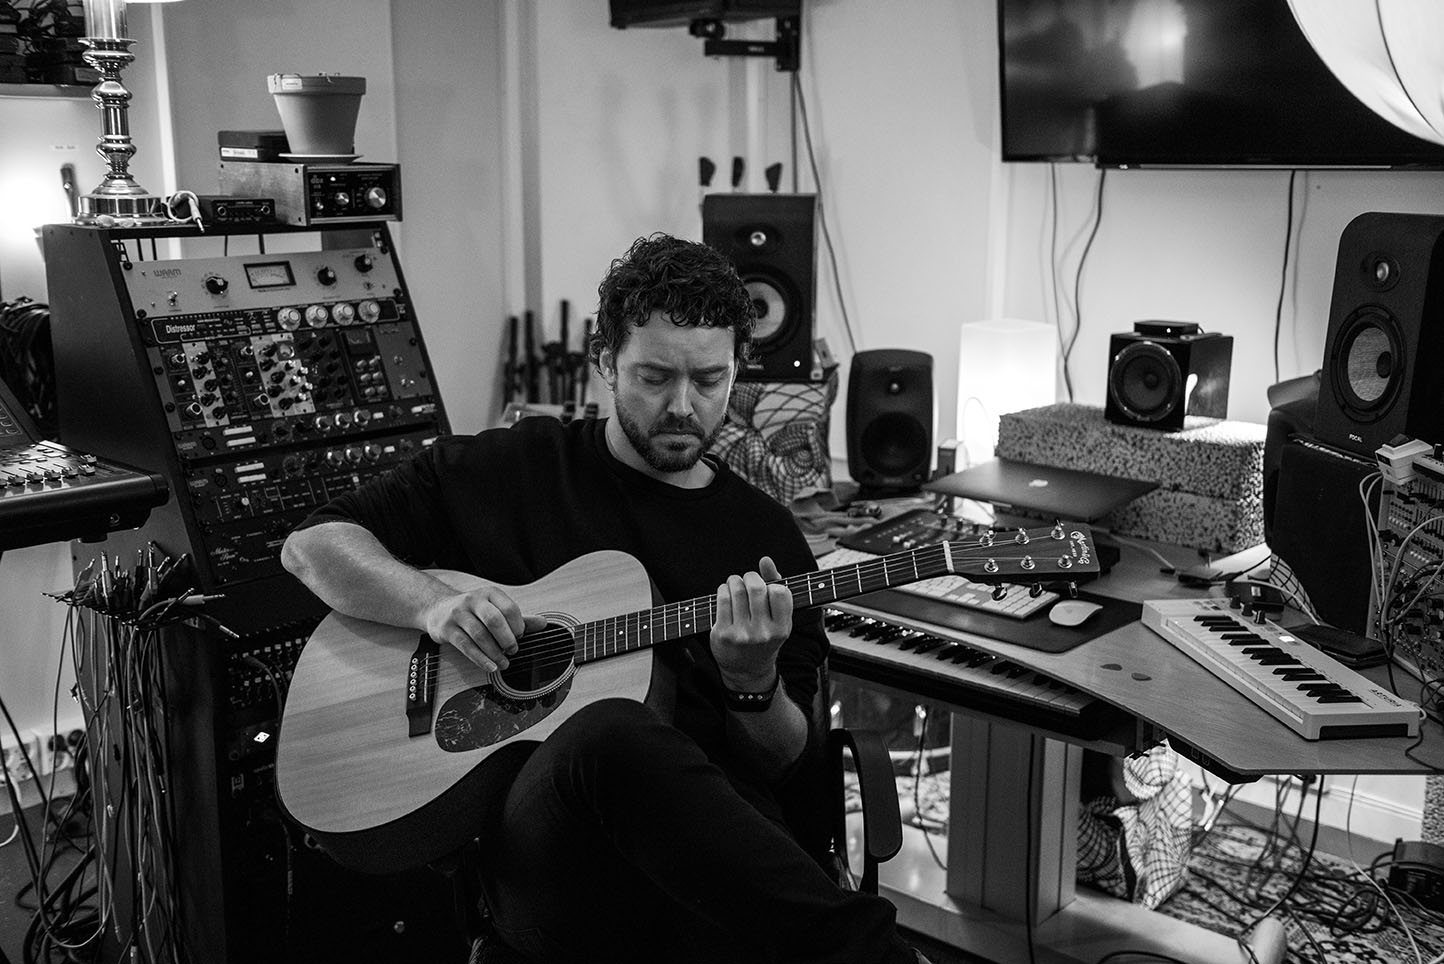 """Petter Vågan' solo album """"Dead Pixel"""" is out now. Read the interview with Petter about his solo project and the inspiration for this album"""